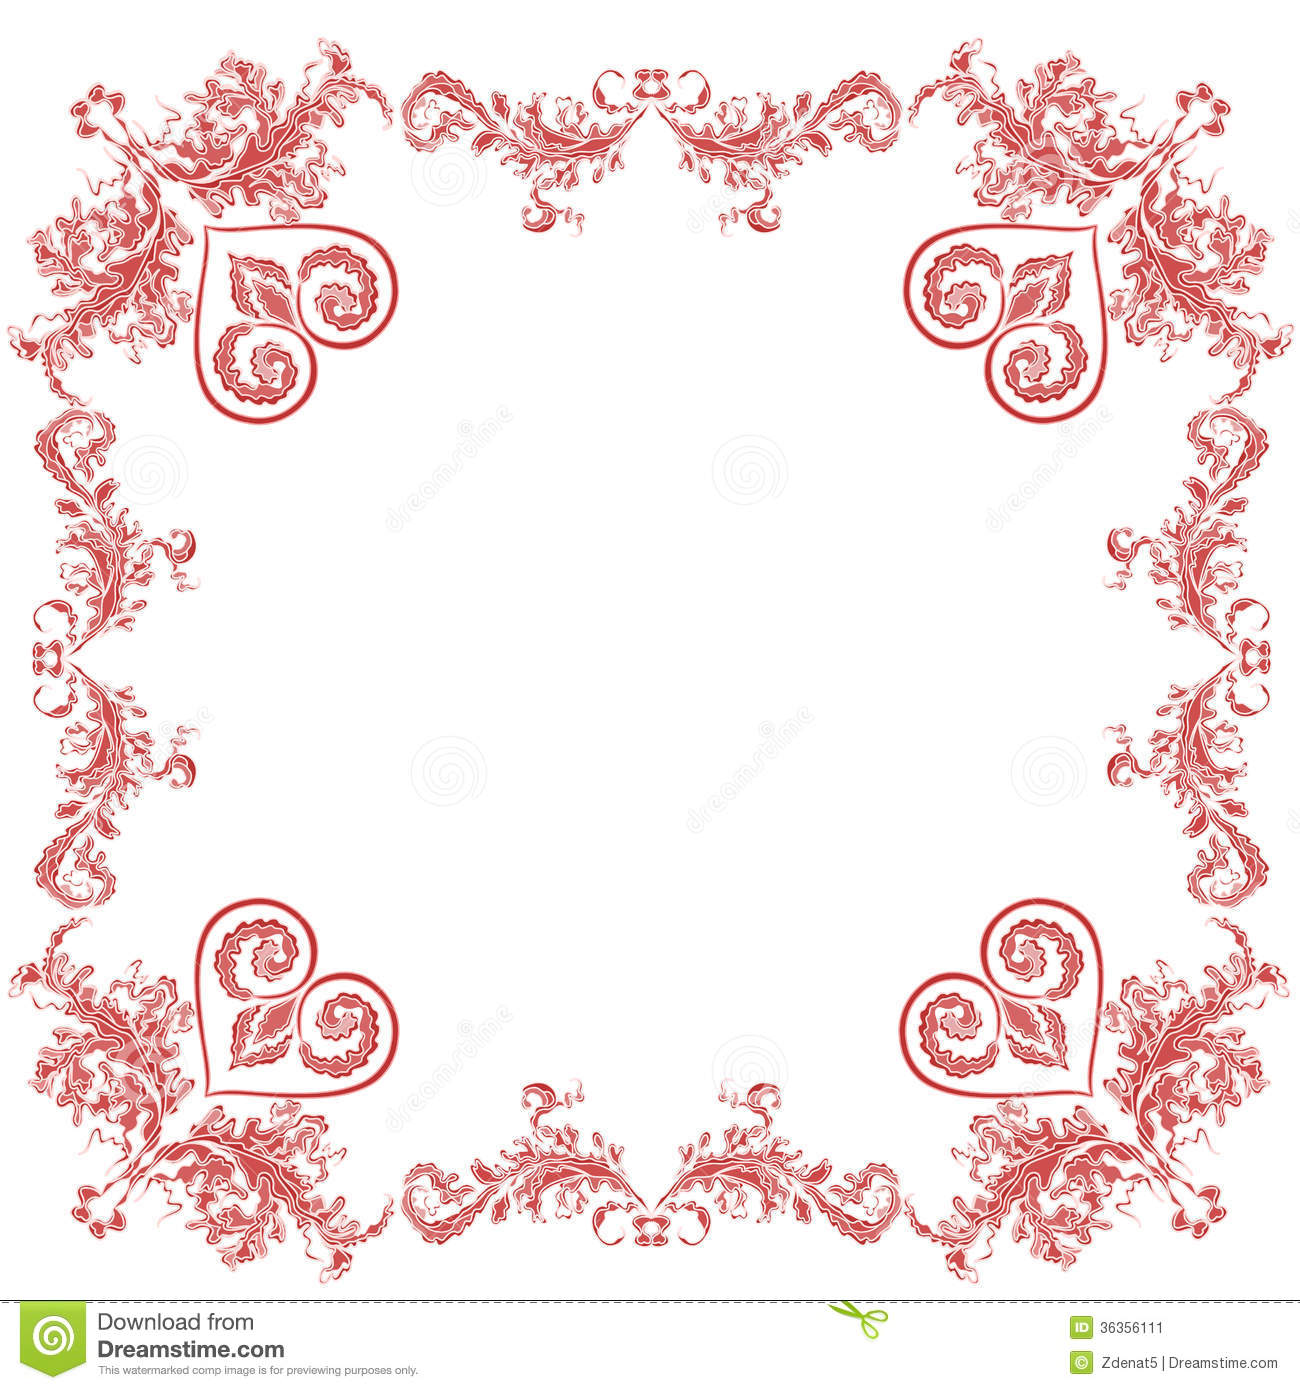 heart floral frame valentine - photo #14